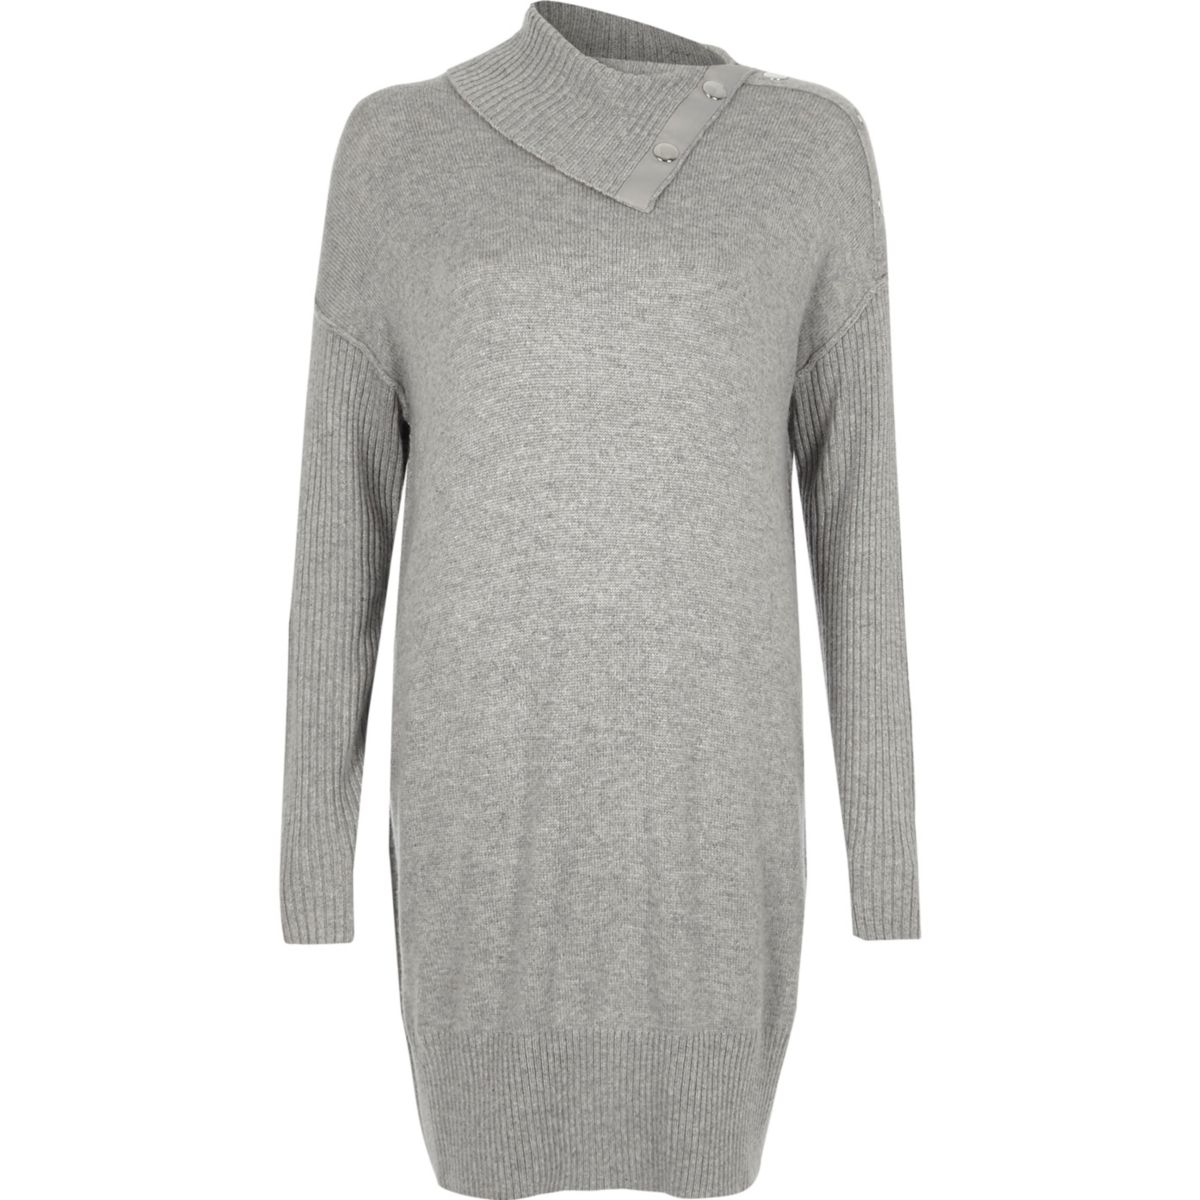 Grey popper neck rib sleeve sweater dress